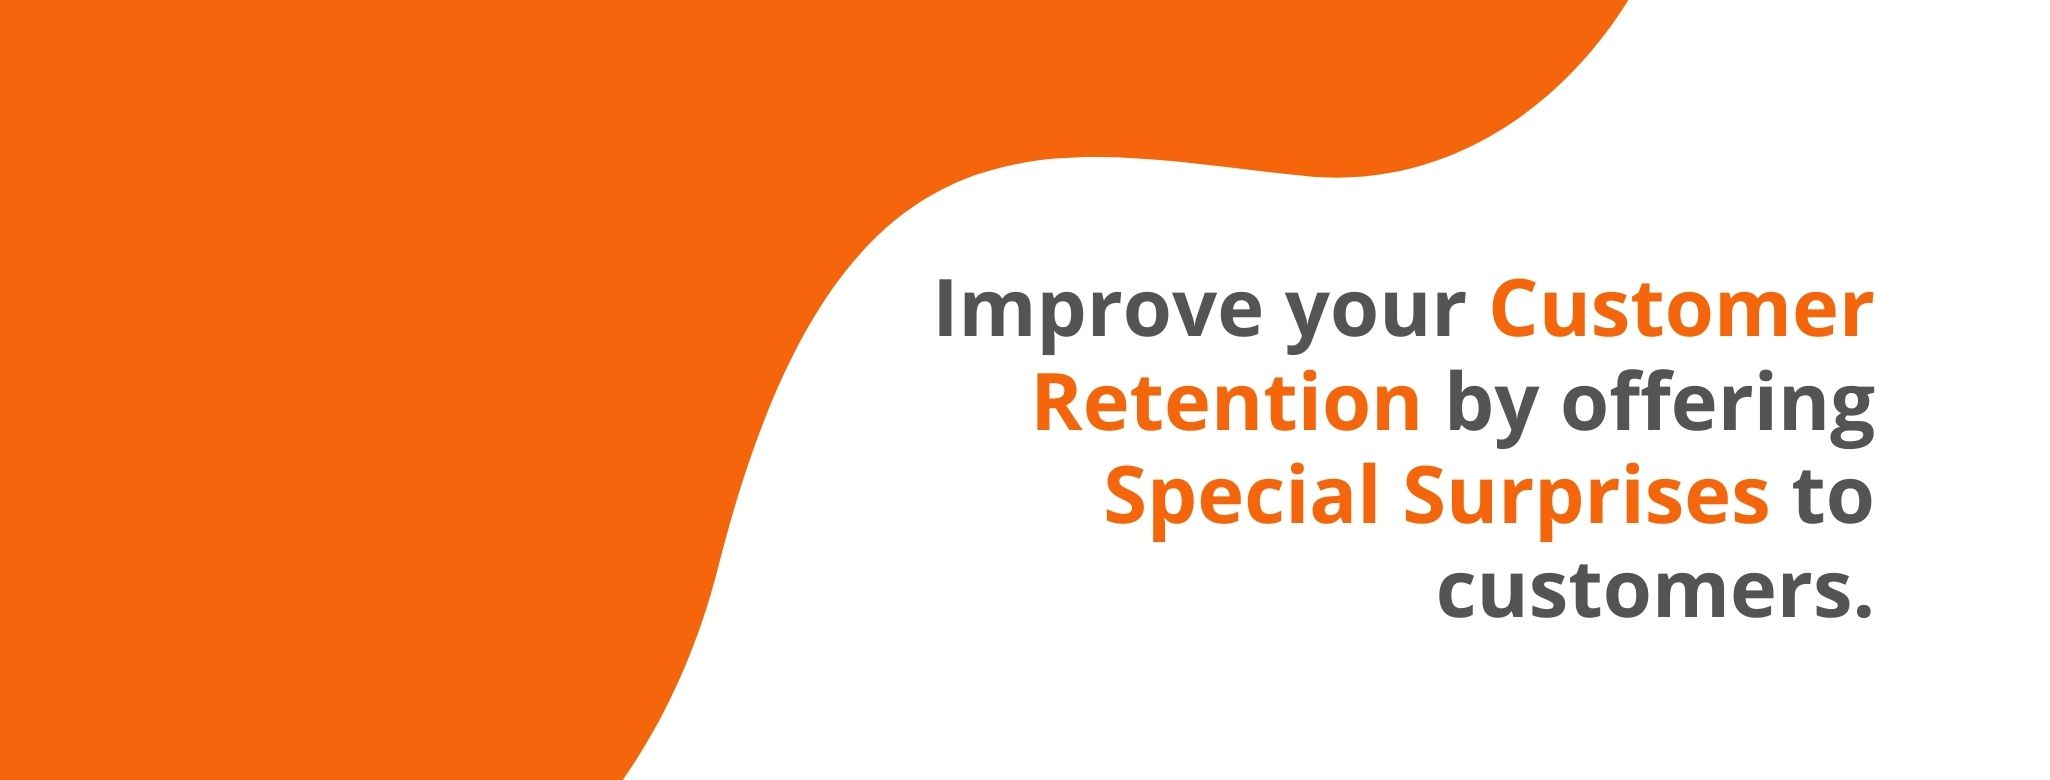 Improve customer retention by offering special surprises to customers - 32 Customer Retention Strategies - Replyco